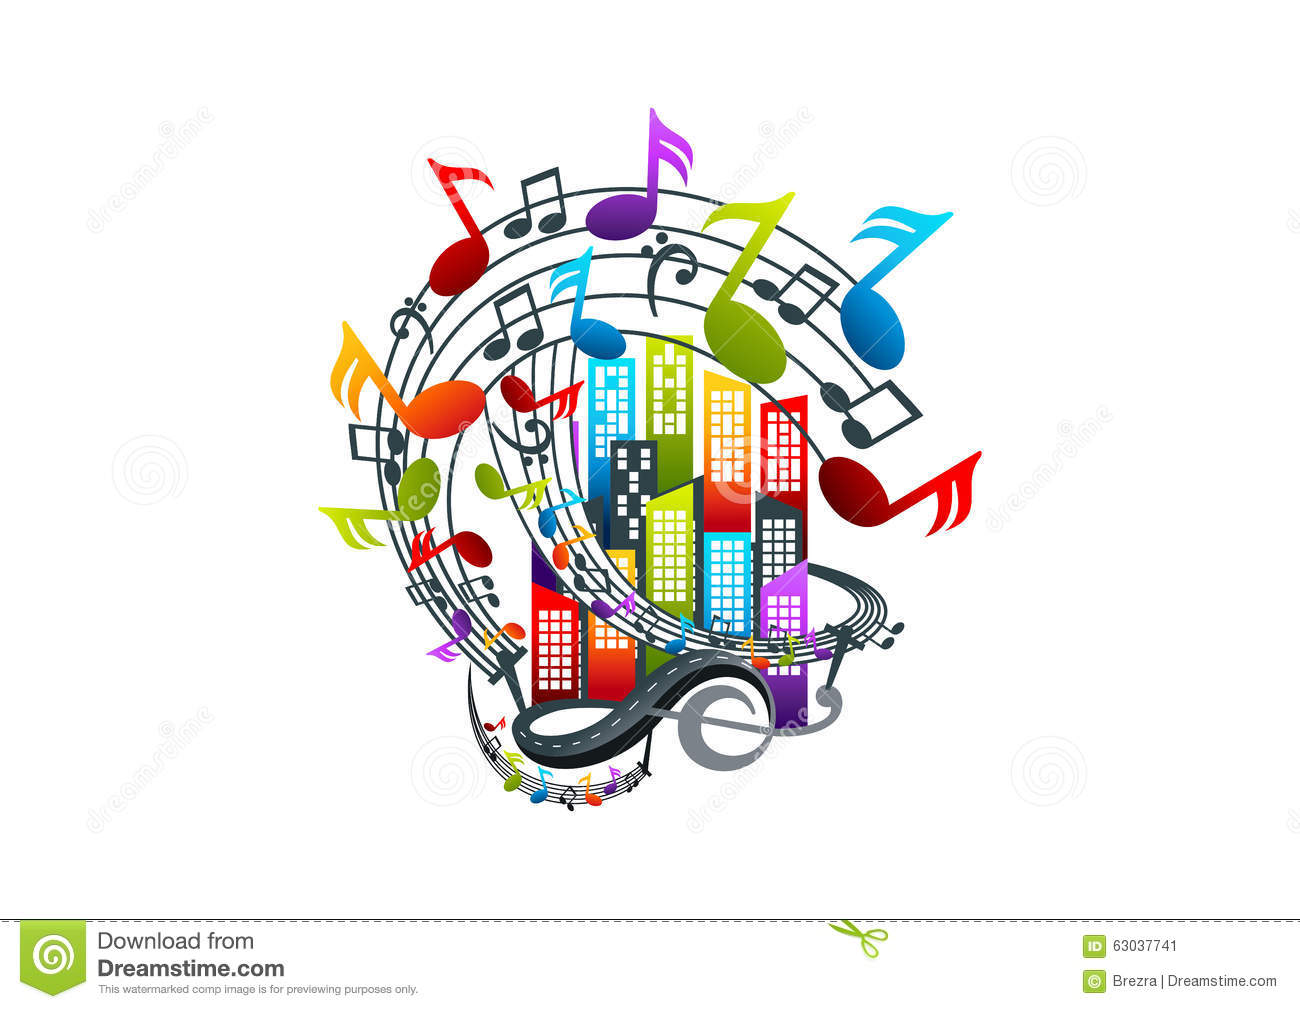 music-logo-design-illustration-represent-white-background-63037741.jpg